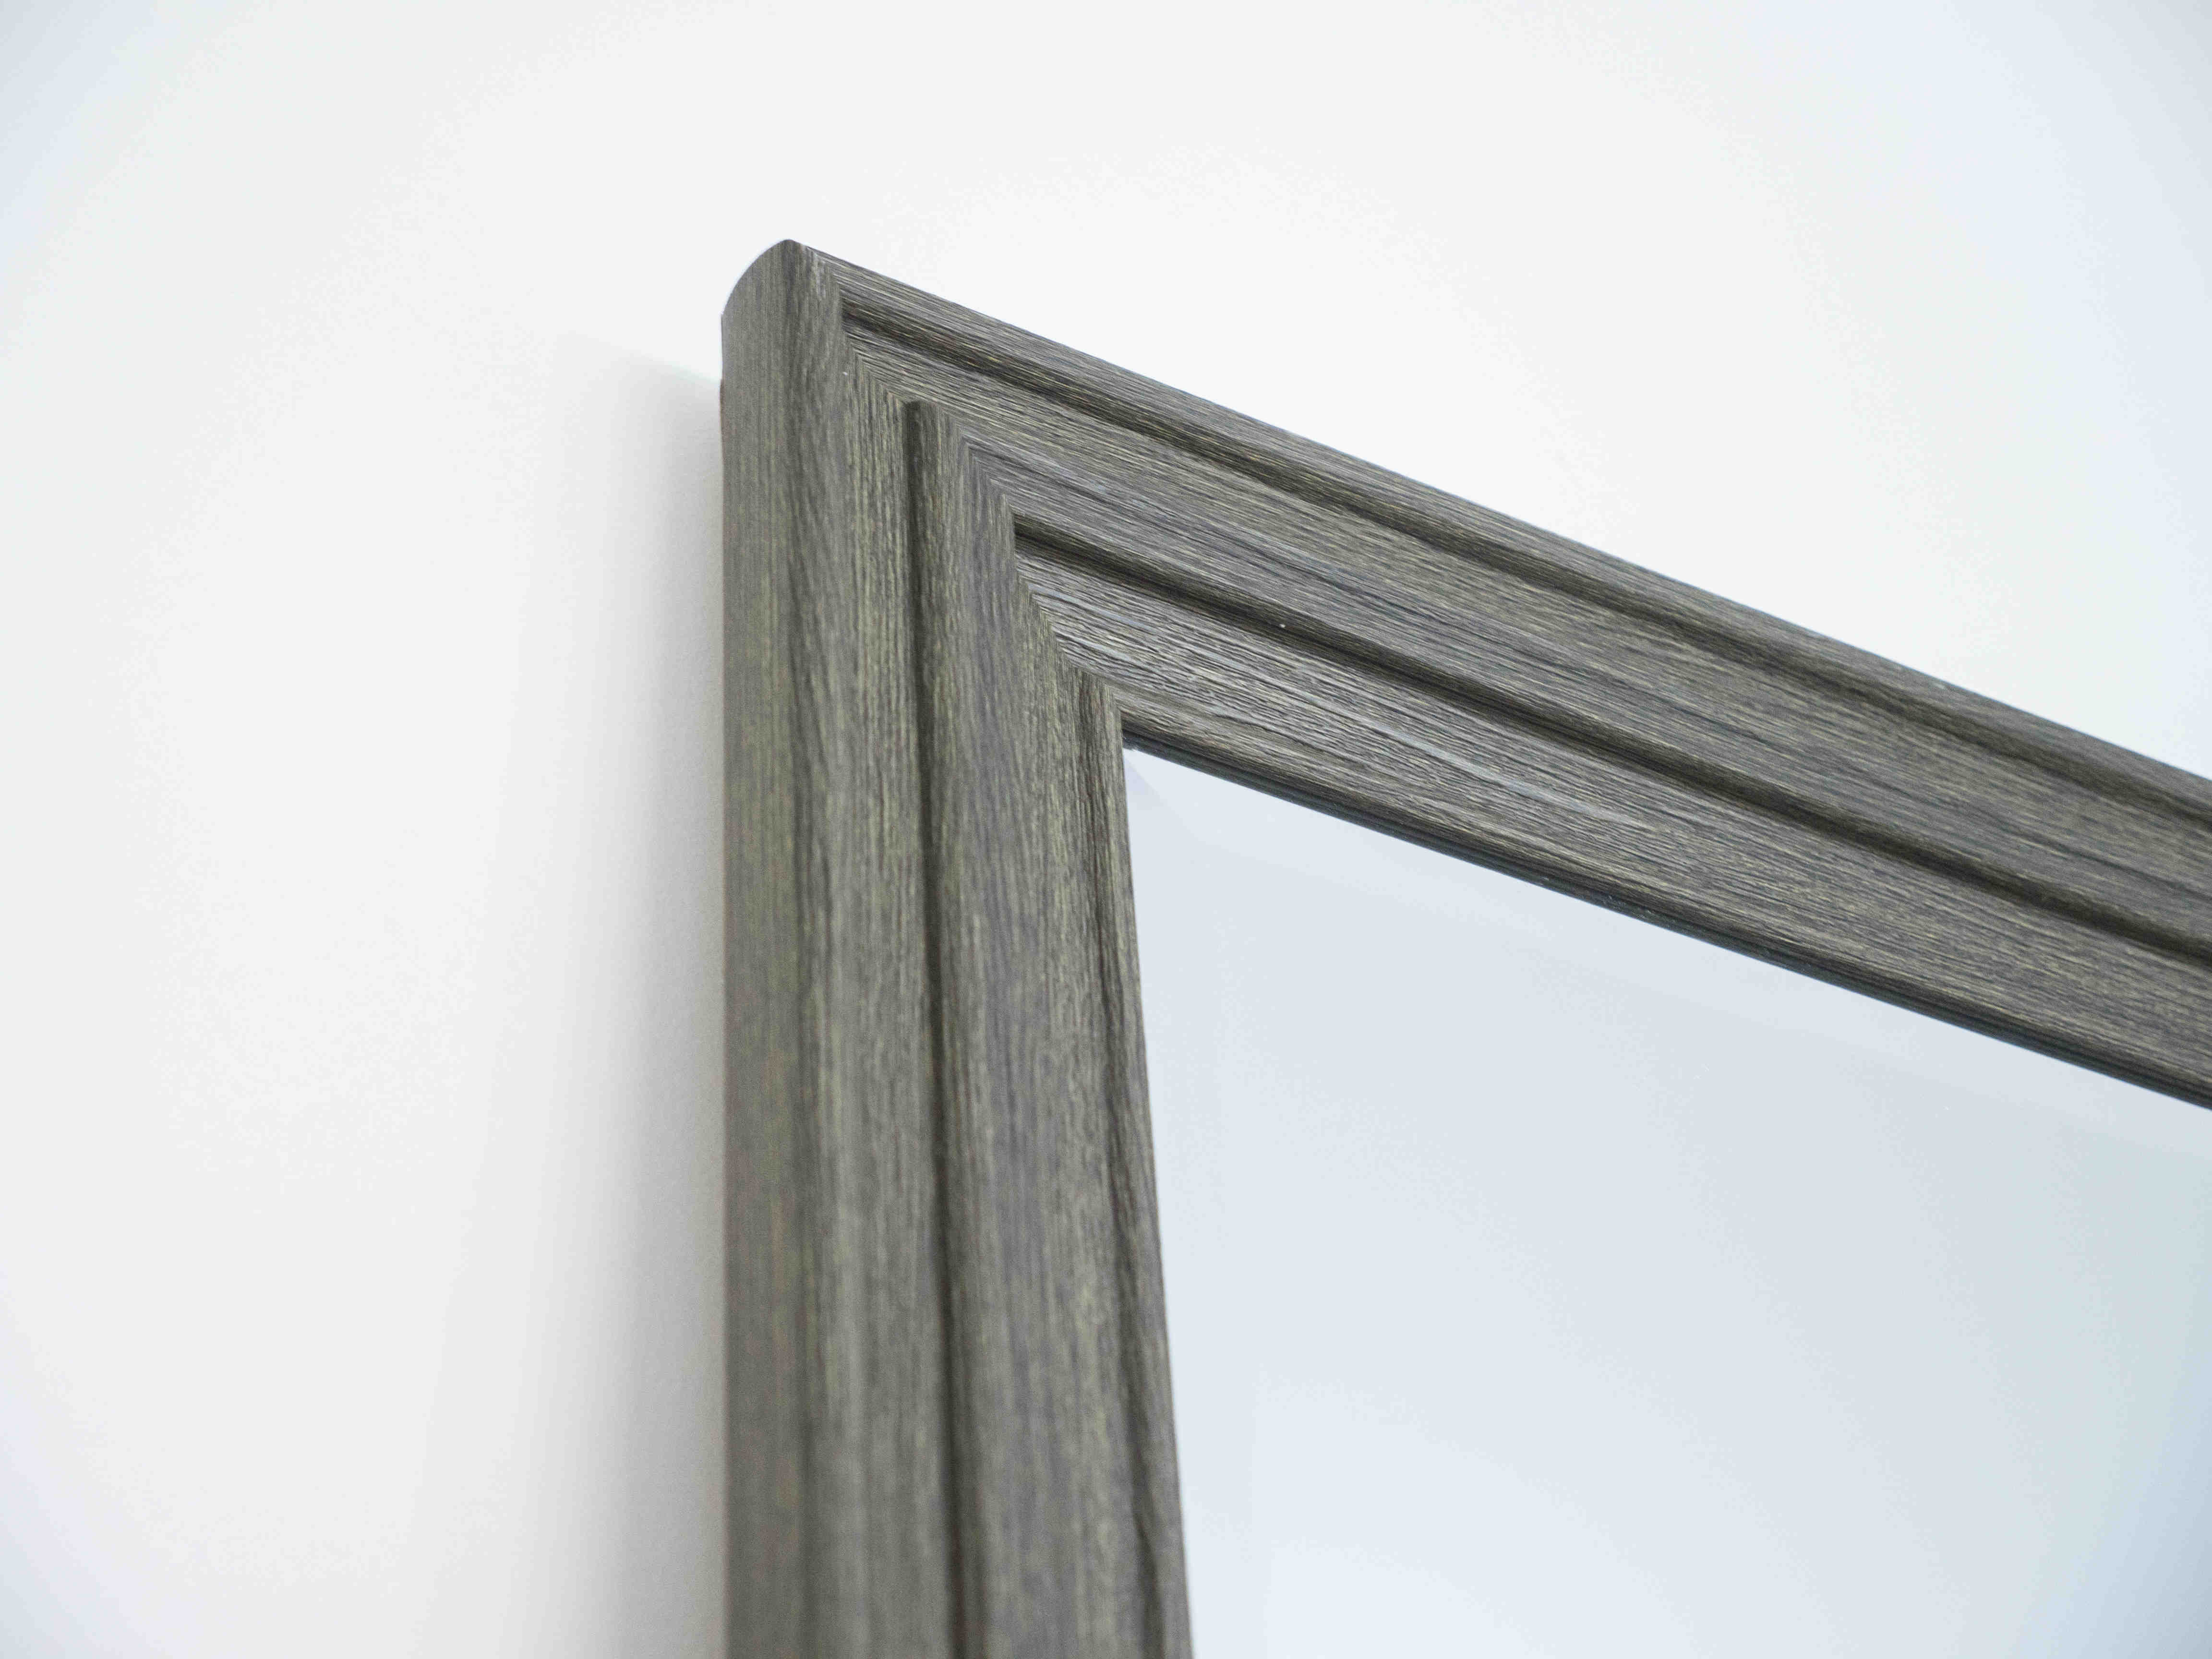 Cheap mirrors melbourne for sale sale cheapest for Cheap mirrors for sale